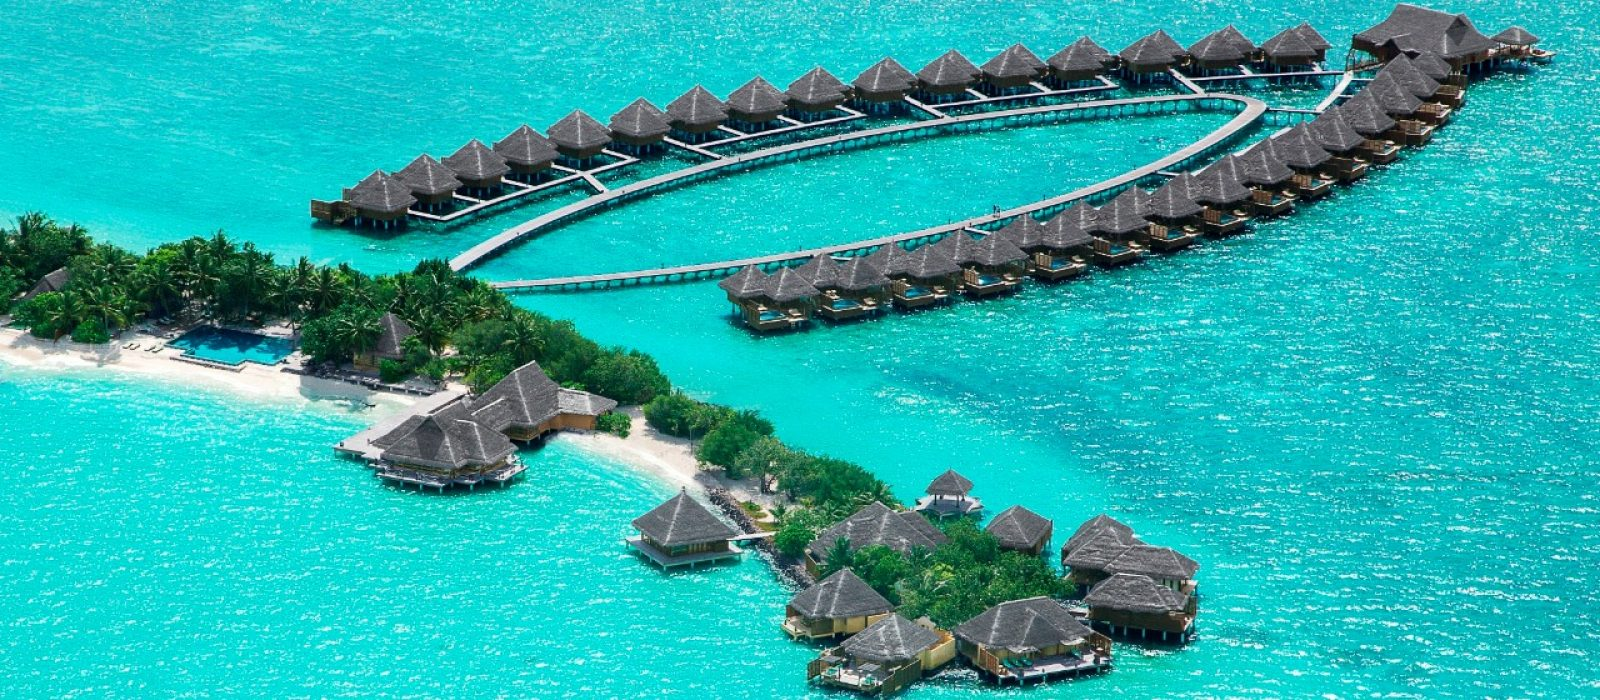 Maldives Add-On   Find paradise in the Indian Ocean